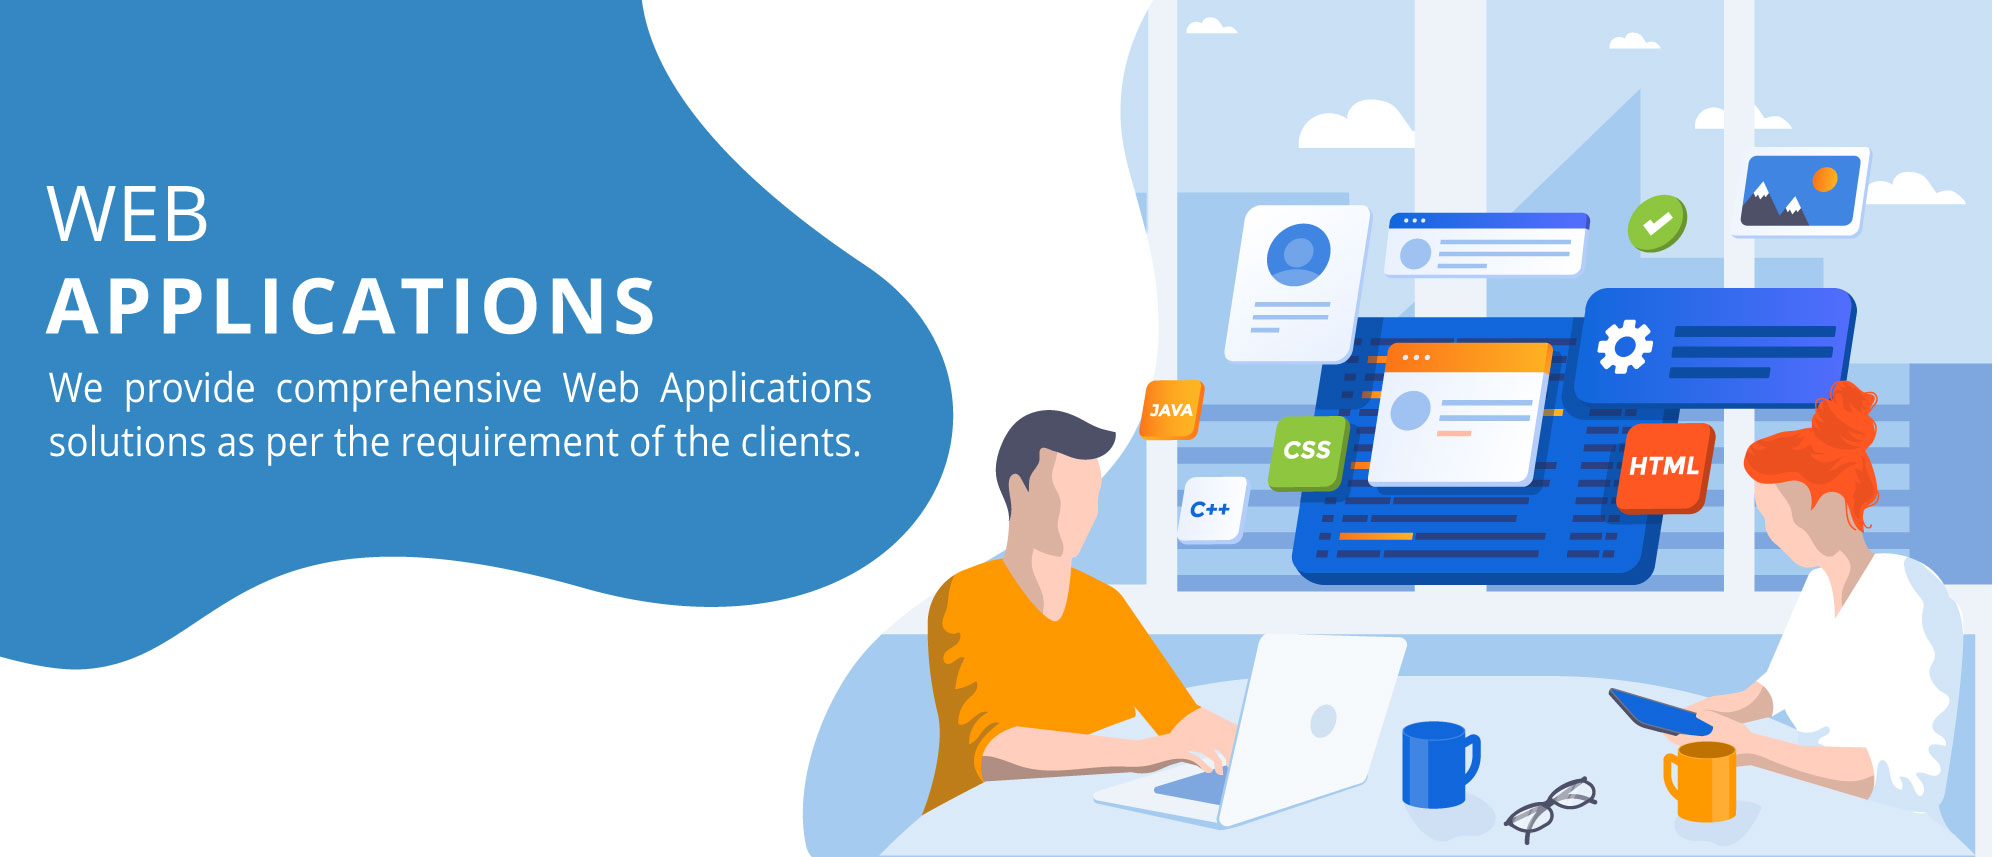 Web Applications, Web Design & Web Development, Web Applications, Web Design & Web Development Lebanon Beirut, Web Applications, Web Design & Web Development In Lebanon Beirut